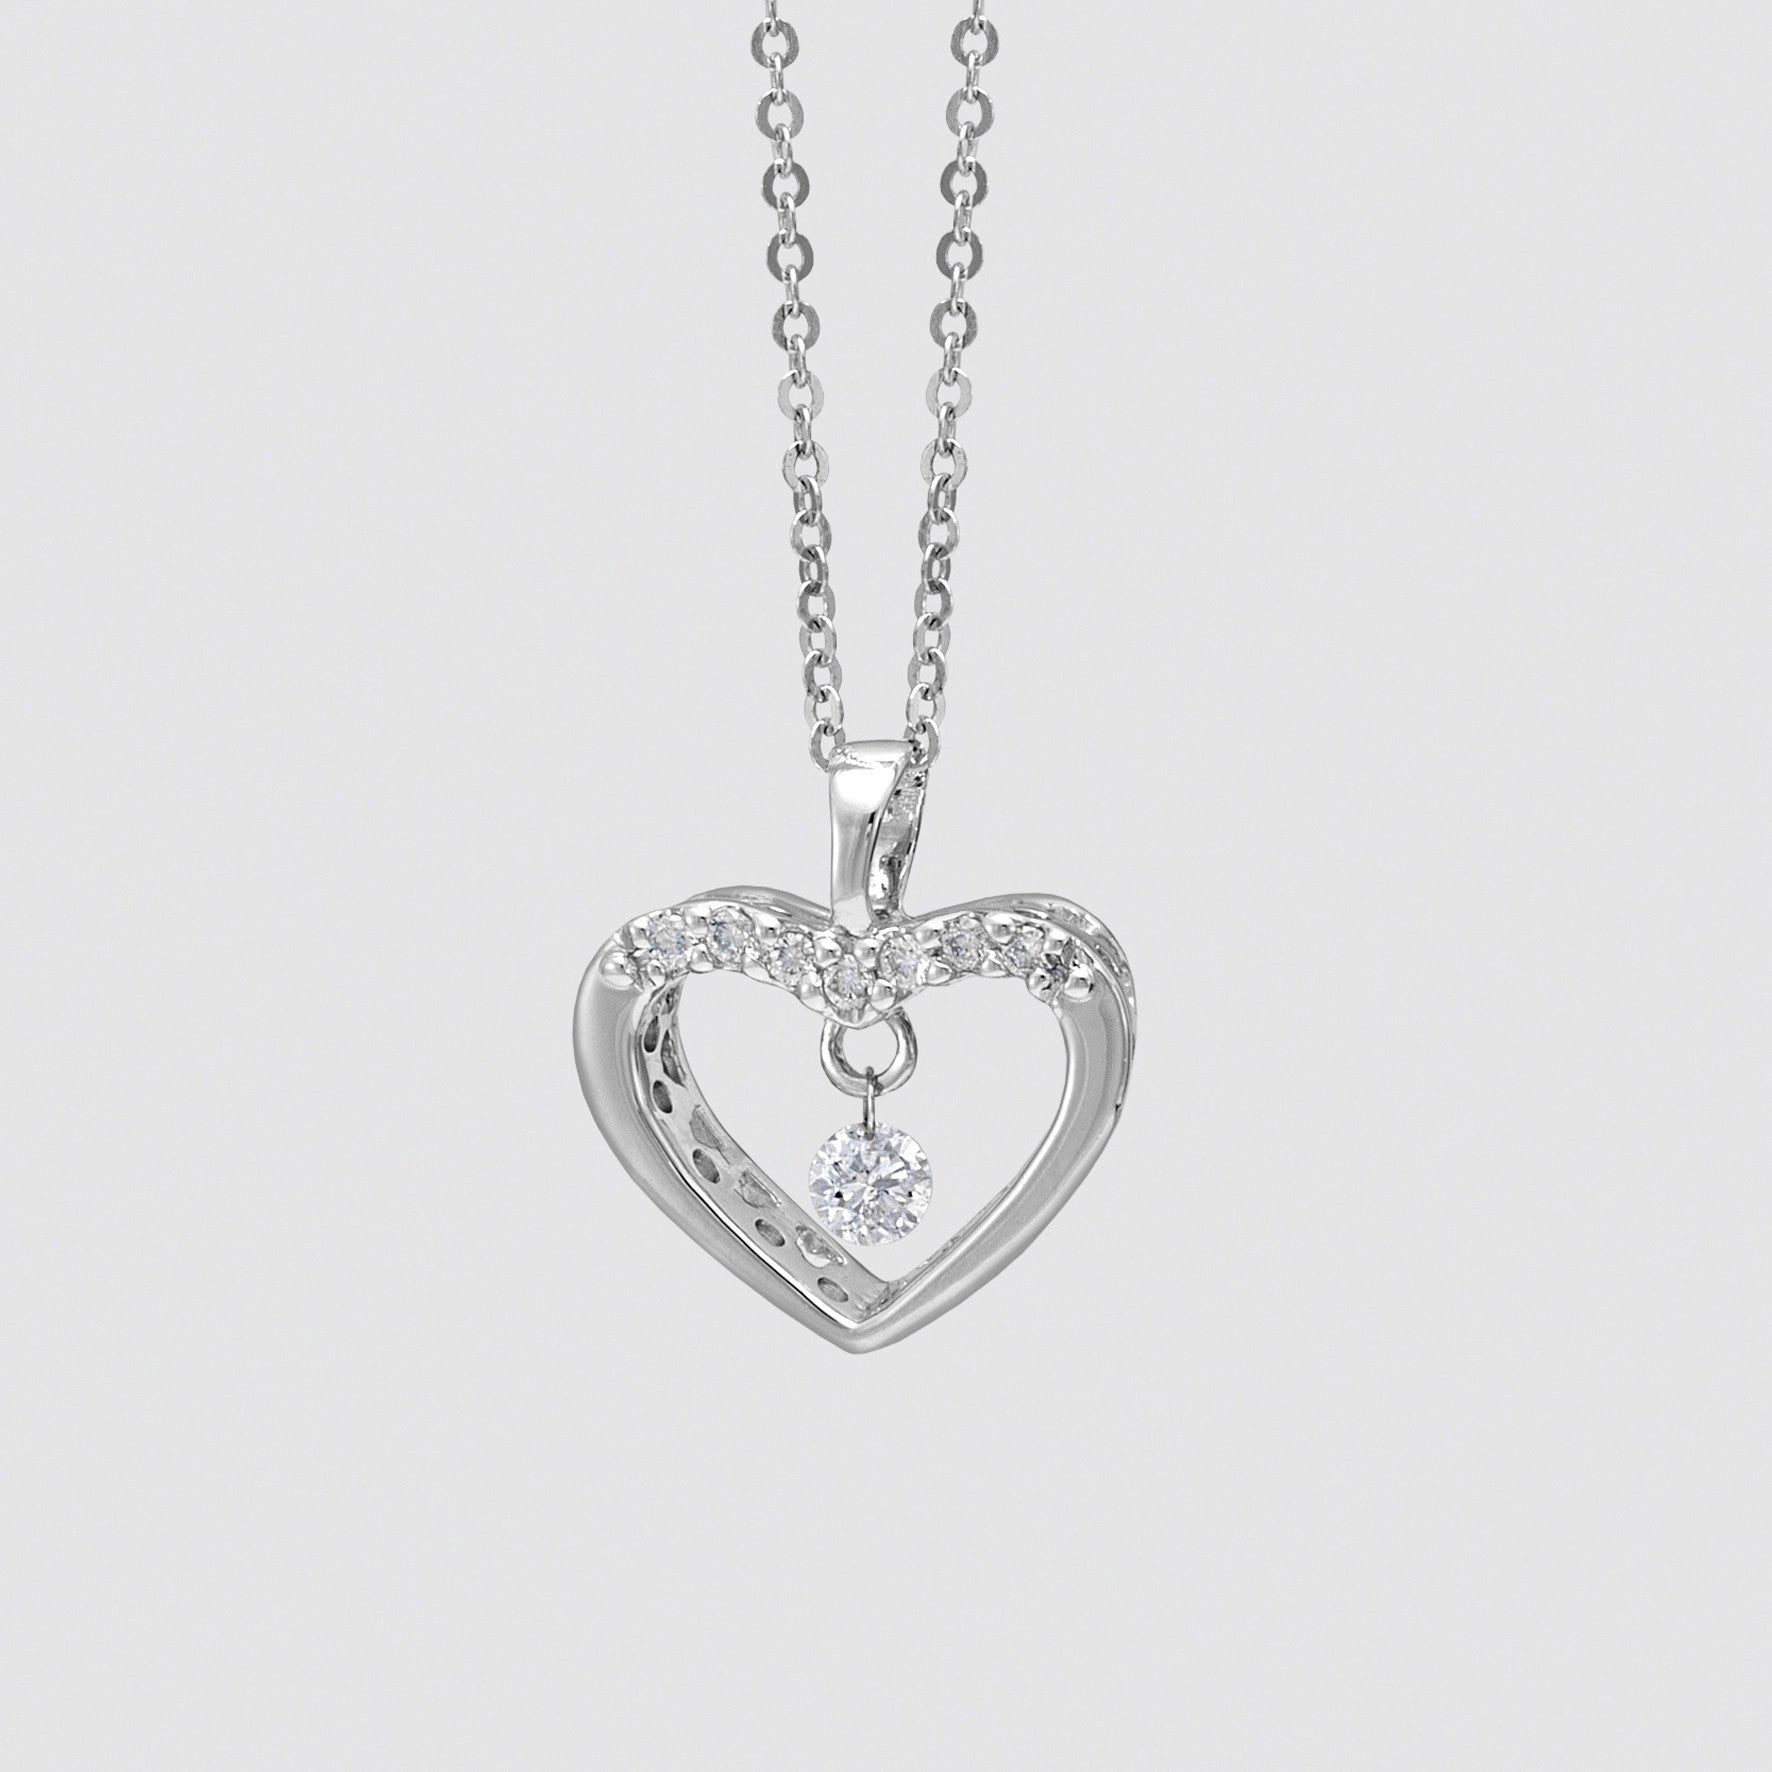 Ponte Vecchio Necklace Heart Diamond 18ct White Gold